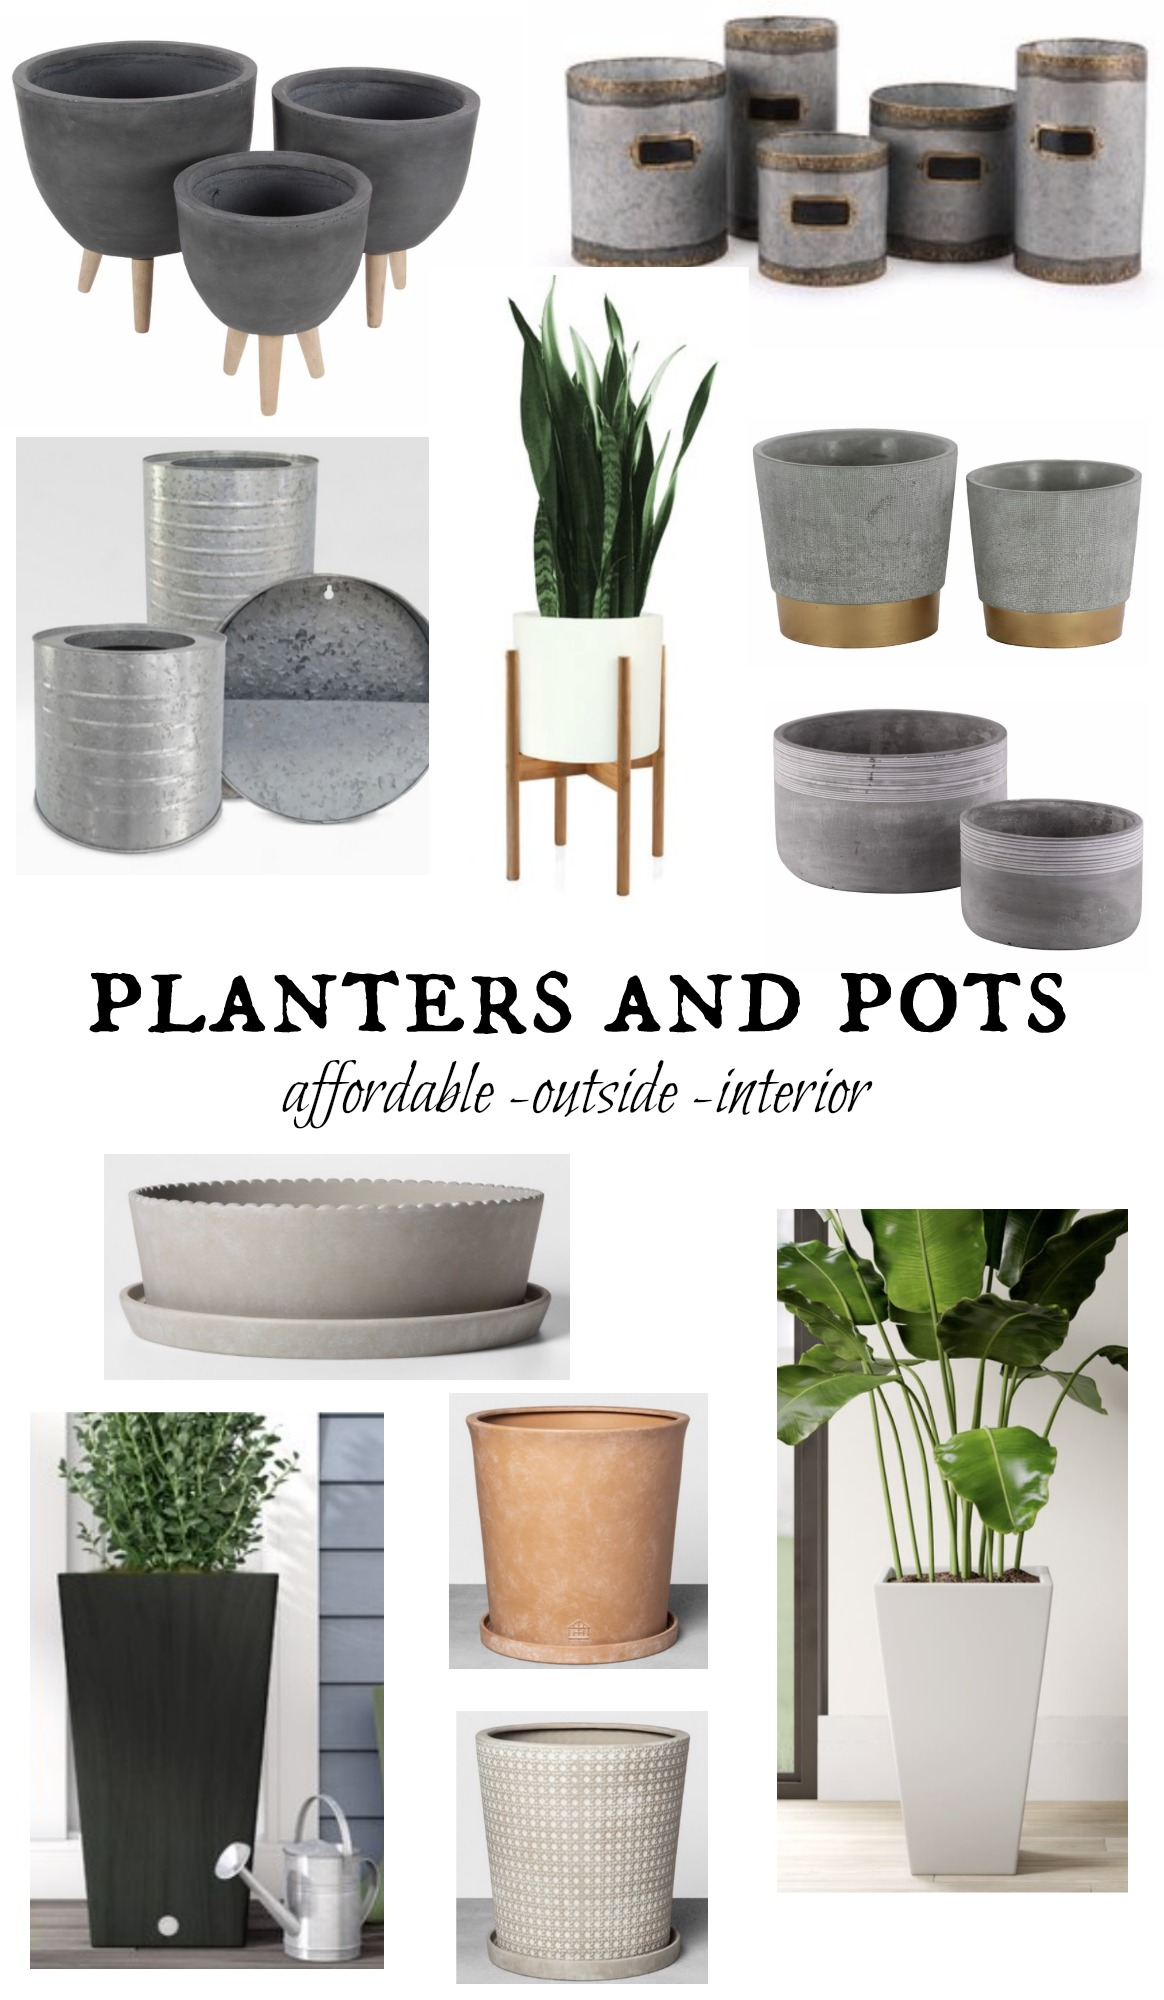 Favorite Outdoor Planters- How to Drill a Hole